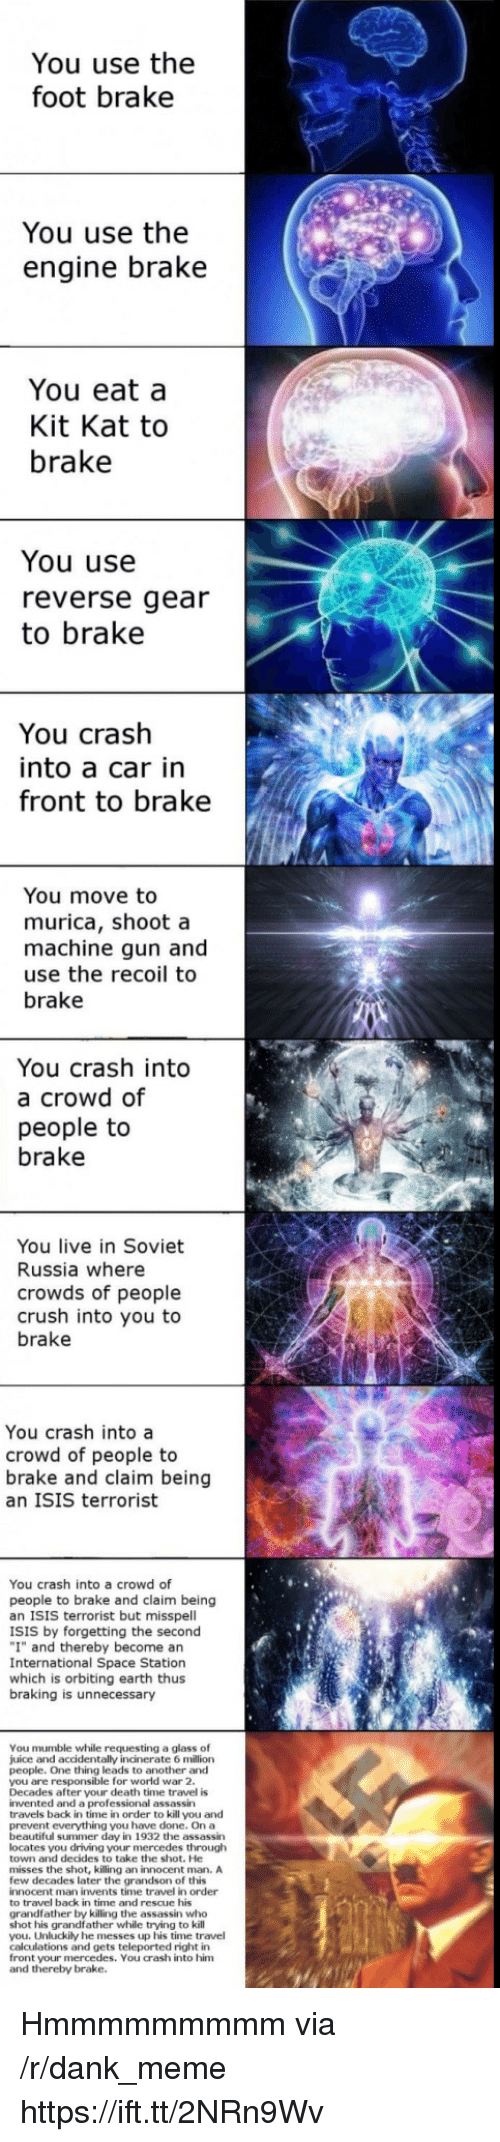 "Beautiful, Crush, and Dank: You use the  foot brake  You use the  engine brake  You eat a  Kit Kat to  brake  You use  reverse gear  to brake  You crash  into a car in  front to brake  You move to  murica, shoot a  machine gun and  use the recoil to  brake  You crash into  a crowd of  people to  brake  You live in Soviet  Russia where  crowds of people  crush into you to  brake  You crash into a  crowd of people to  brake and claim being  an ISIS terrorist  You crash into a crowd of  people to brake and claim being  an ISIS terrorist but misspell  ISIS by forgetting the second  ""I"" and thereby become an  International Space Station  which is orbiting earth thus  braking is unnecessary  You mumble while requesting a glass of  juice and accidentally incinerate 6 million  people. One thing leads to another and  you are responsible for world war 2  Decades after your death time travel is  invented and a professional assassin  travels back in time in order to kill you and  prevent everything you have done. On a  beautiful summer day in 1932 the assassin  locates you driving your mercedes througlh  town and decides to take the shot. He  misses the shot, killing an innocent man. A  few decades later the grandson of this  innocent man invents time travel in order  to travel back in time and rescue his  grandfather by killing the assassin who  shot his grandfather while trying to kill  you. Unluckily he messes up his time travel  calculations and gets teleported right in  front your mercedes. You crash into him  and thereby brake. Hmmmmmmmmm via /r/dank_meme https://ift.tt/2NRn9Wv"